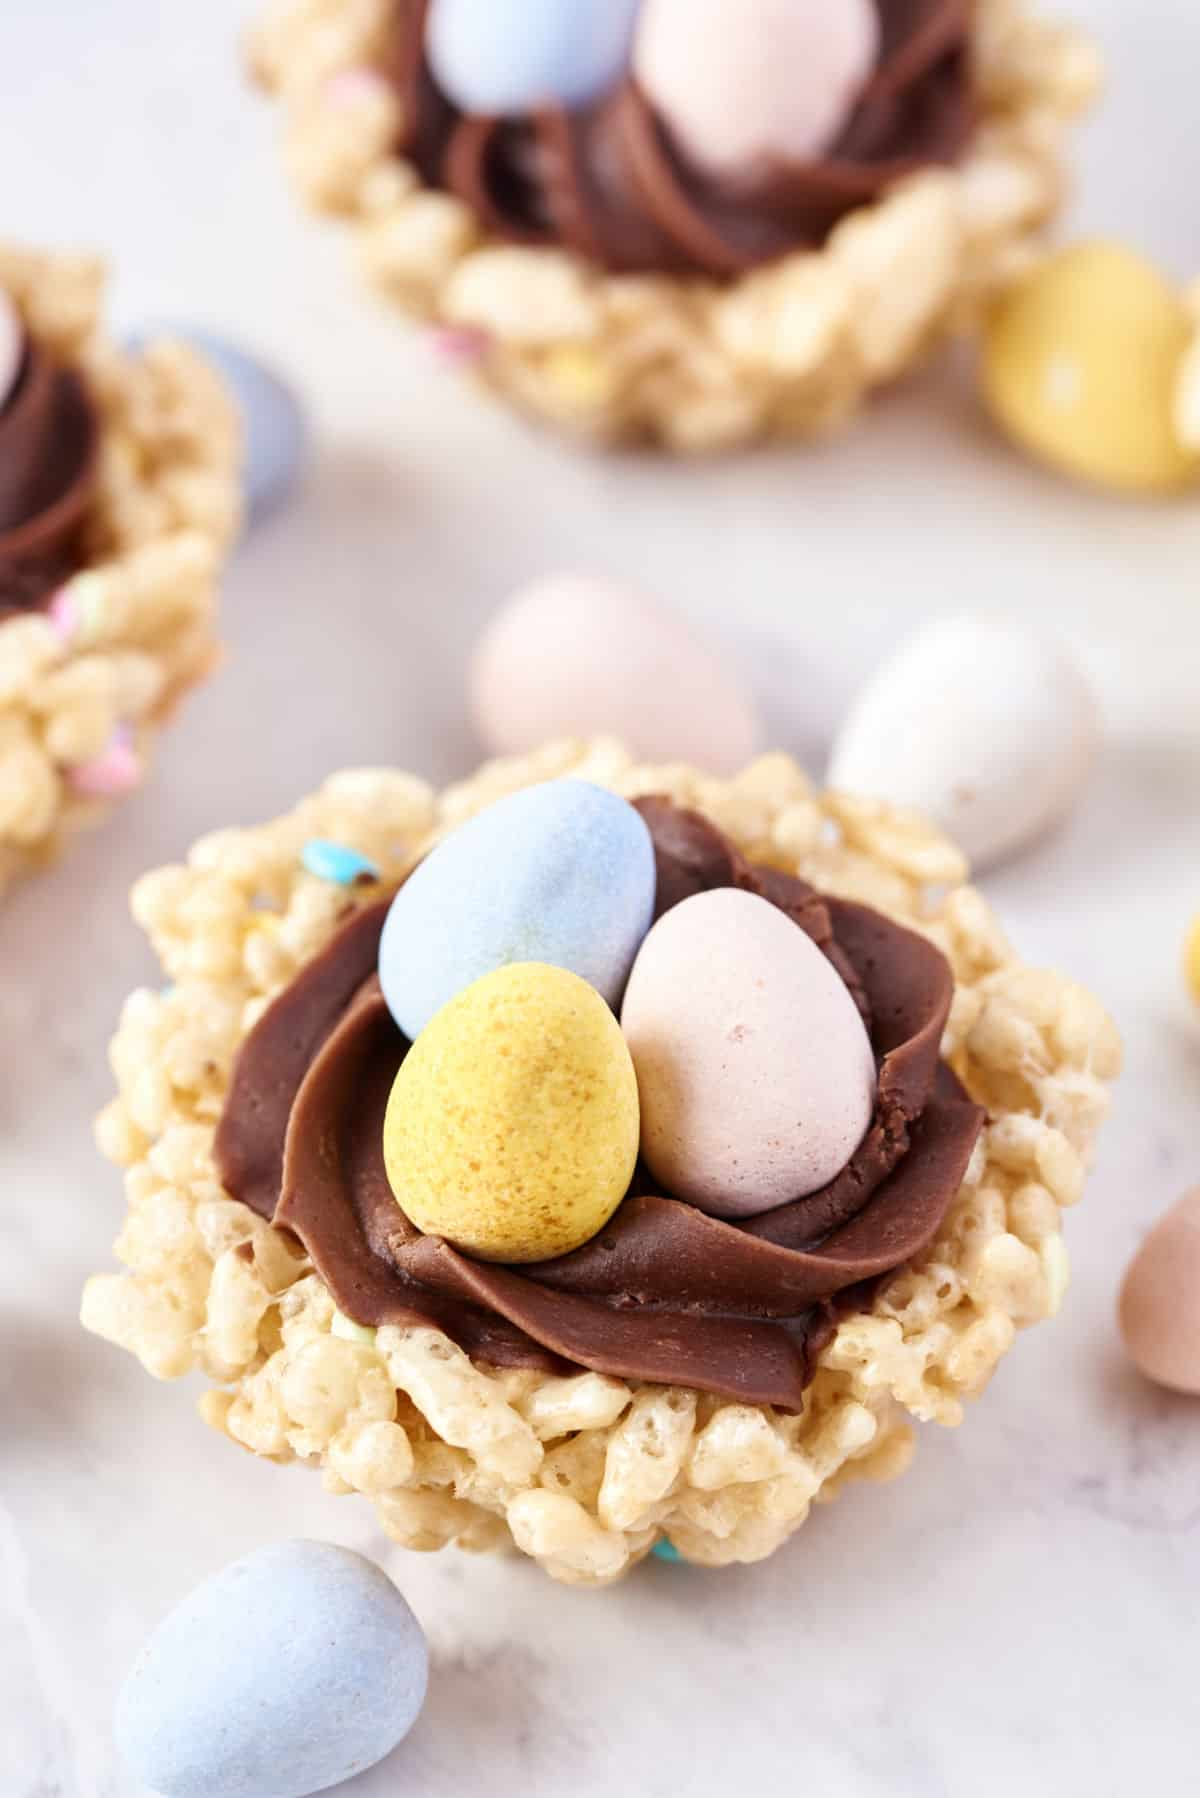 Rice krispie treats shaped as a nest and filled with chocolate frosting and candy.